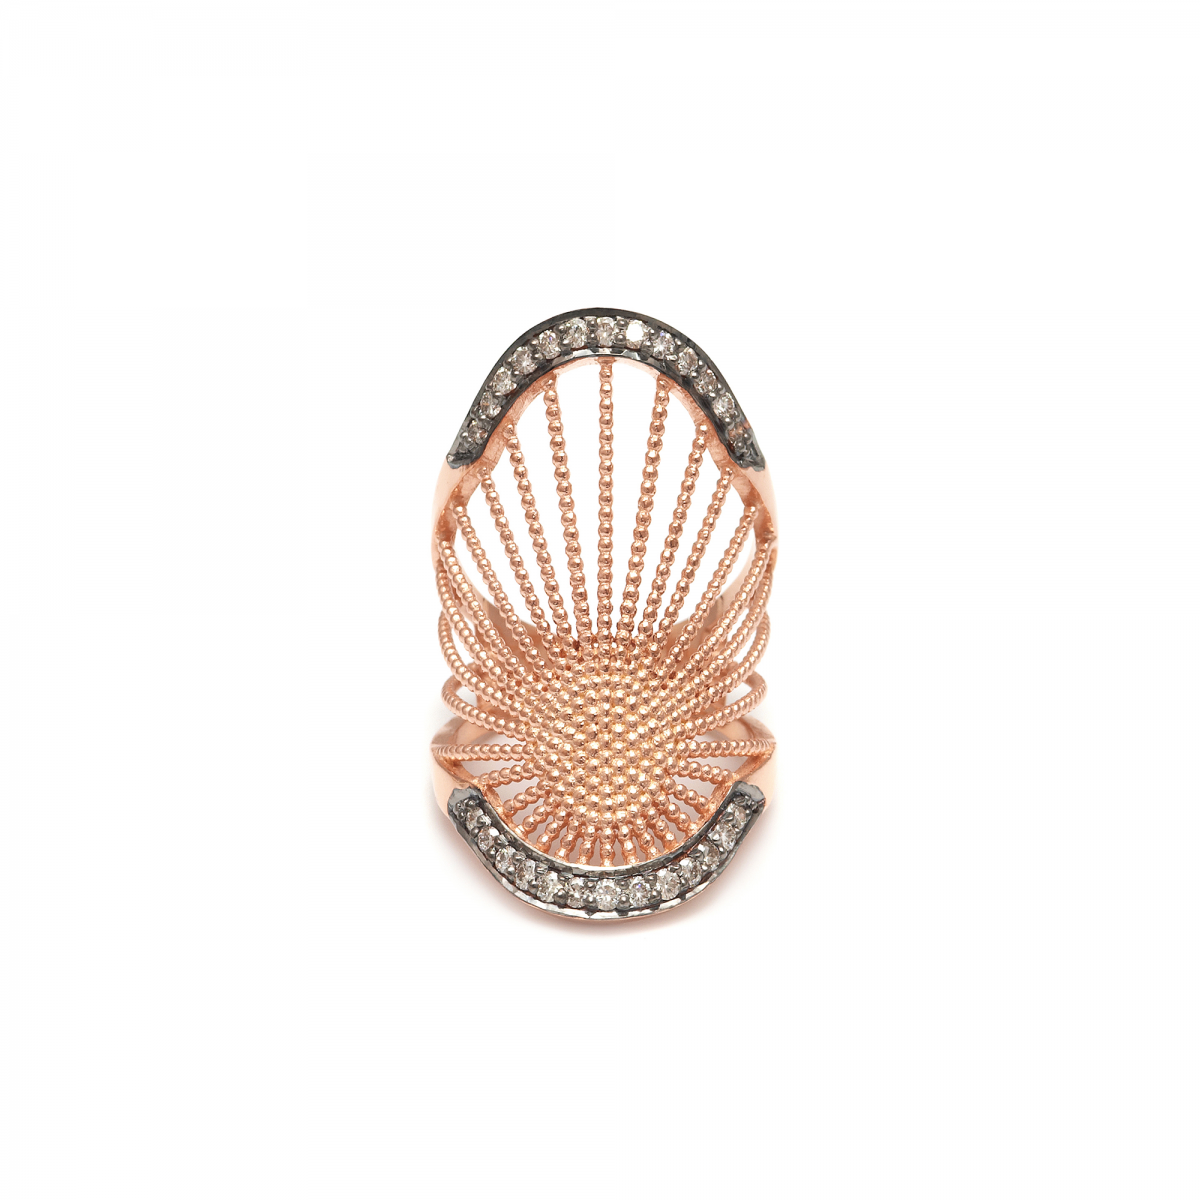 CL – Oriental_Long_Ring_in_Rose_Vermeil_with_White_Diamonds_by_Assya